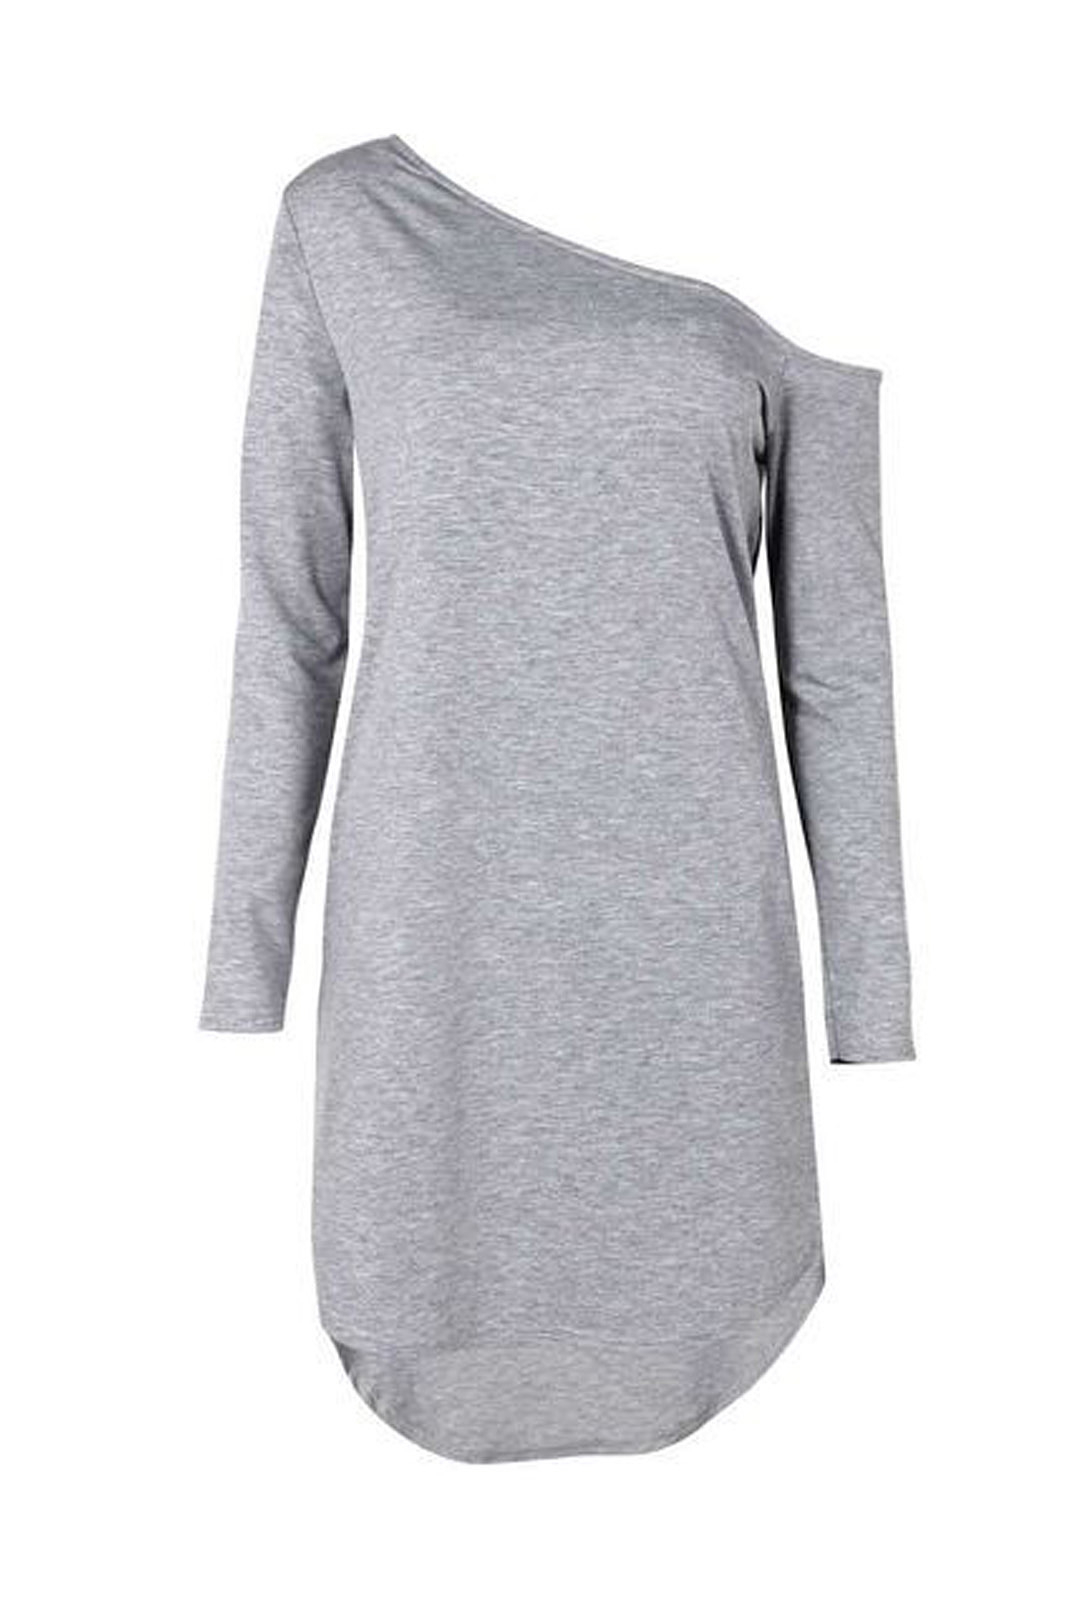 One Shoulder Long Sleeve Dress in Grey SKU298186